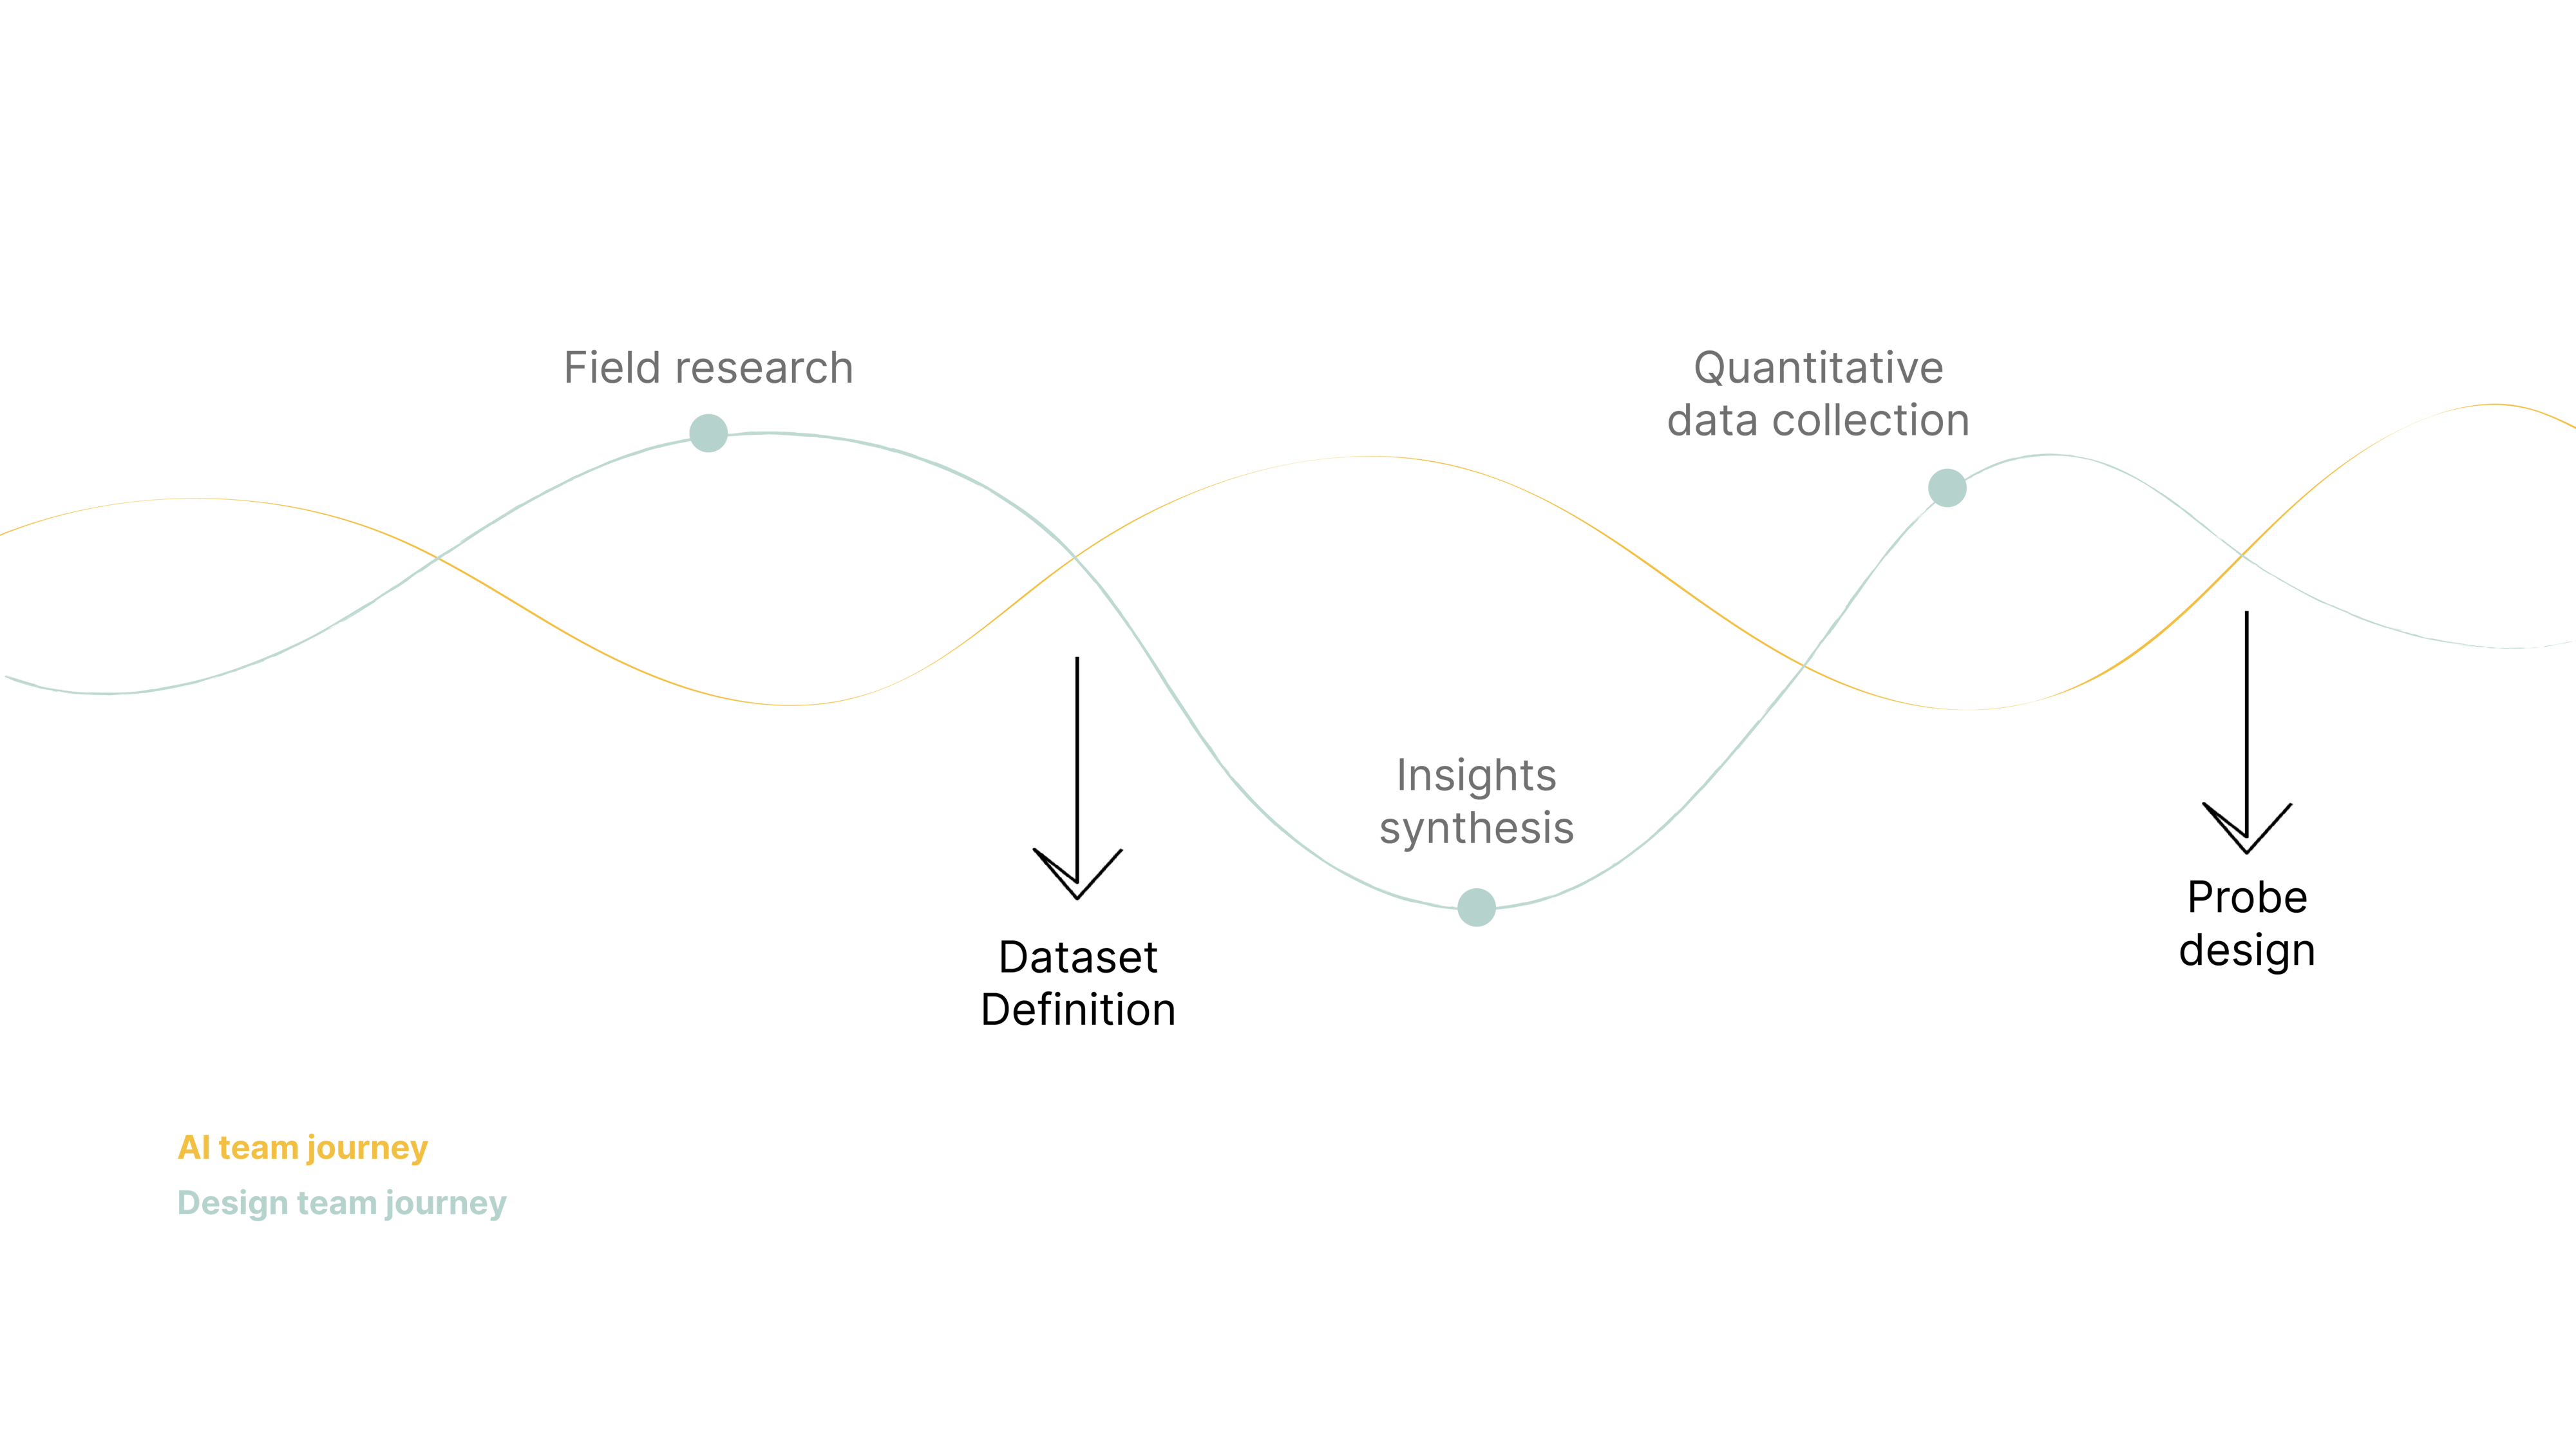 An infographic showing the journeys of the design team and AI team.